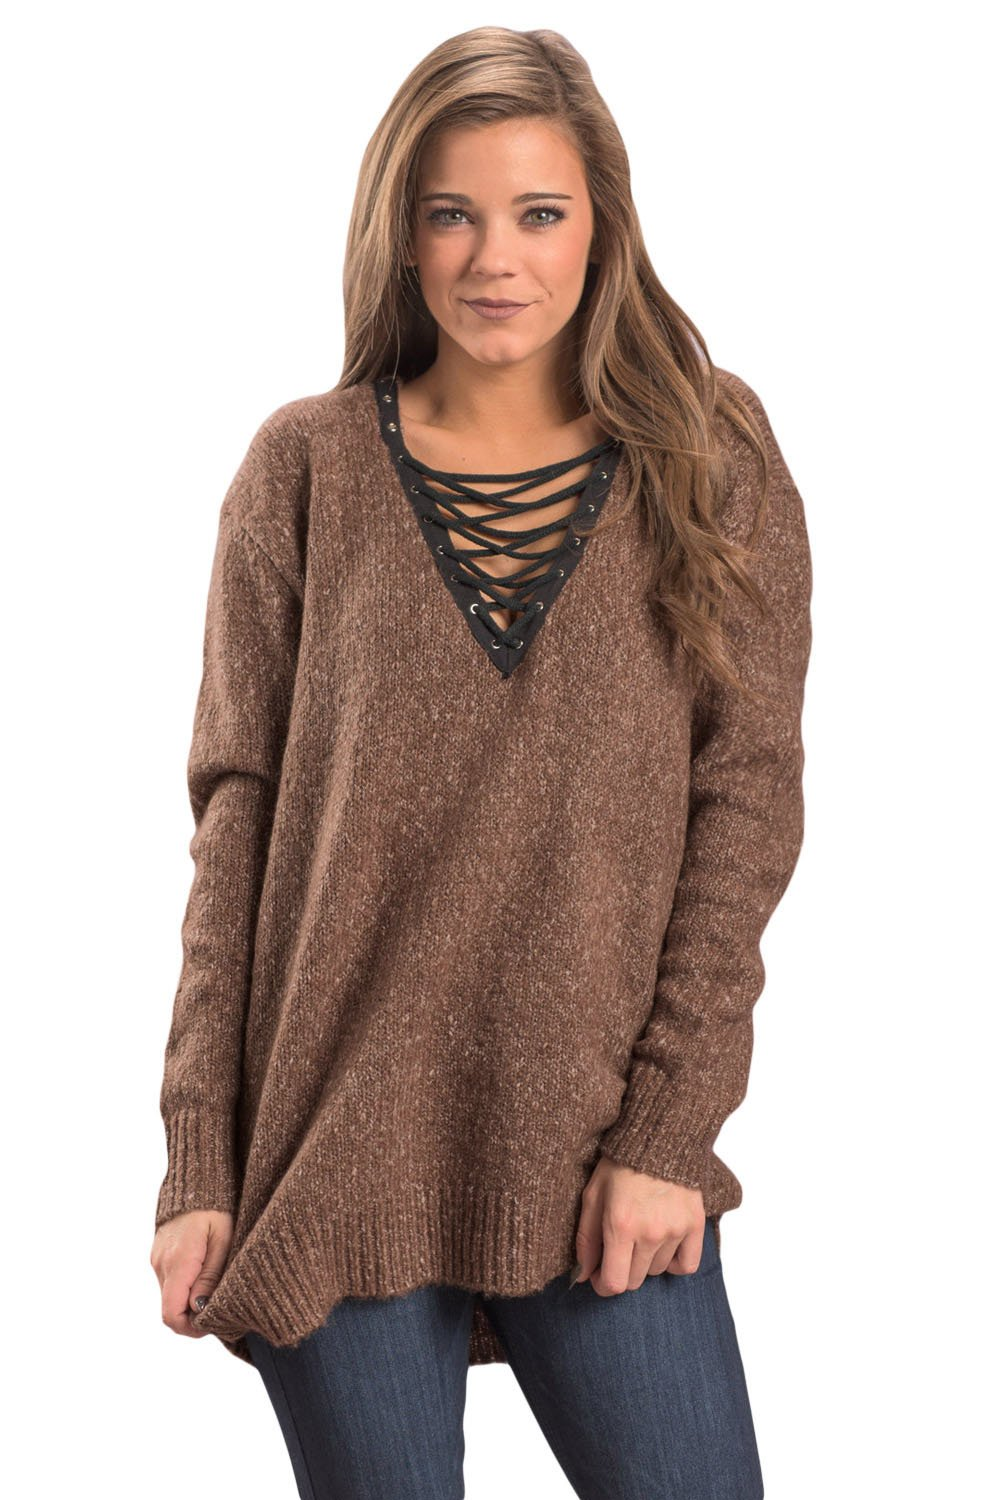 Tan Chic Long Sleeve Sweater with Lace up Neckline